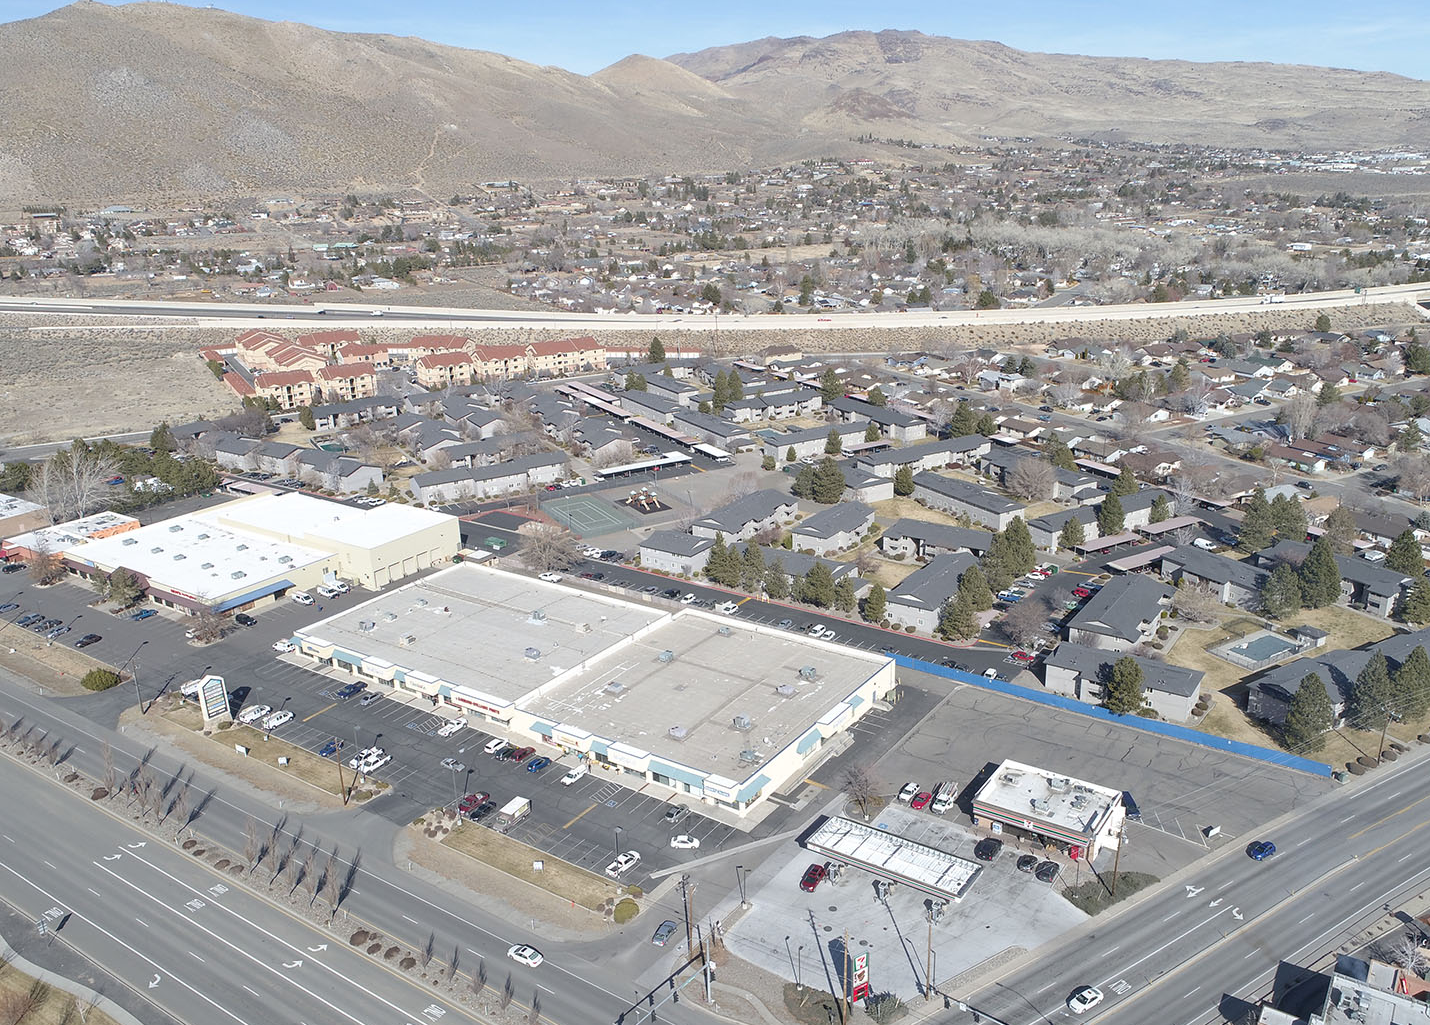 CBRE arranges $2.9 million sale of The Home Center retail center in Carson City, NV